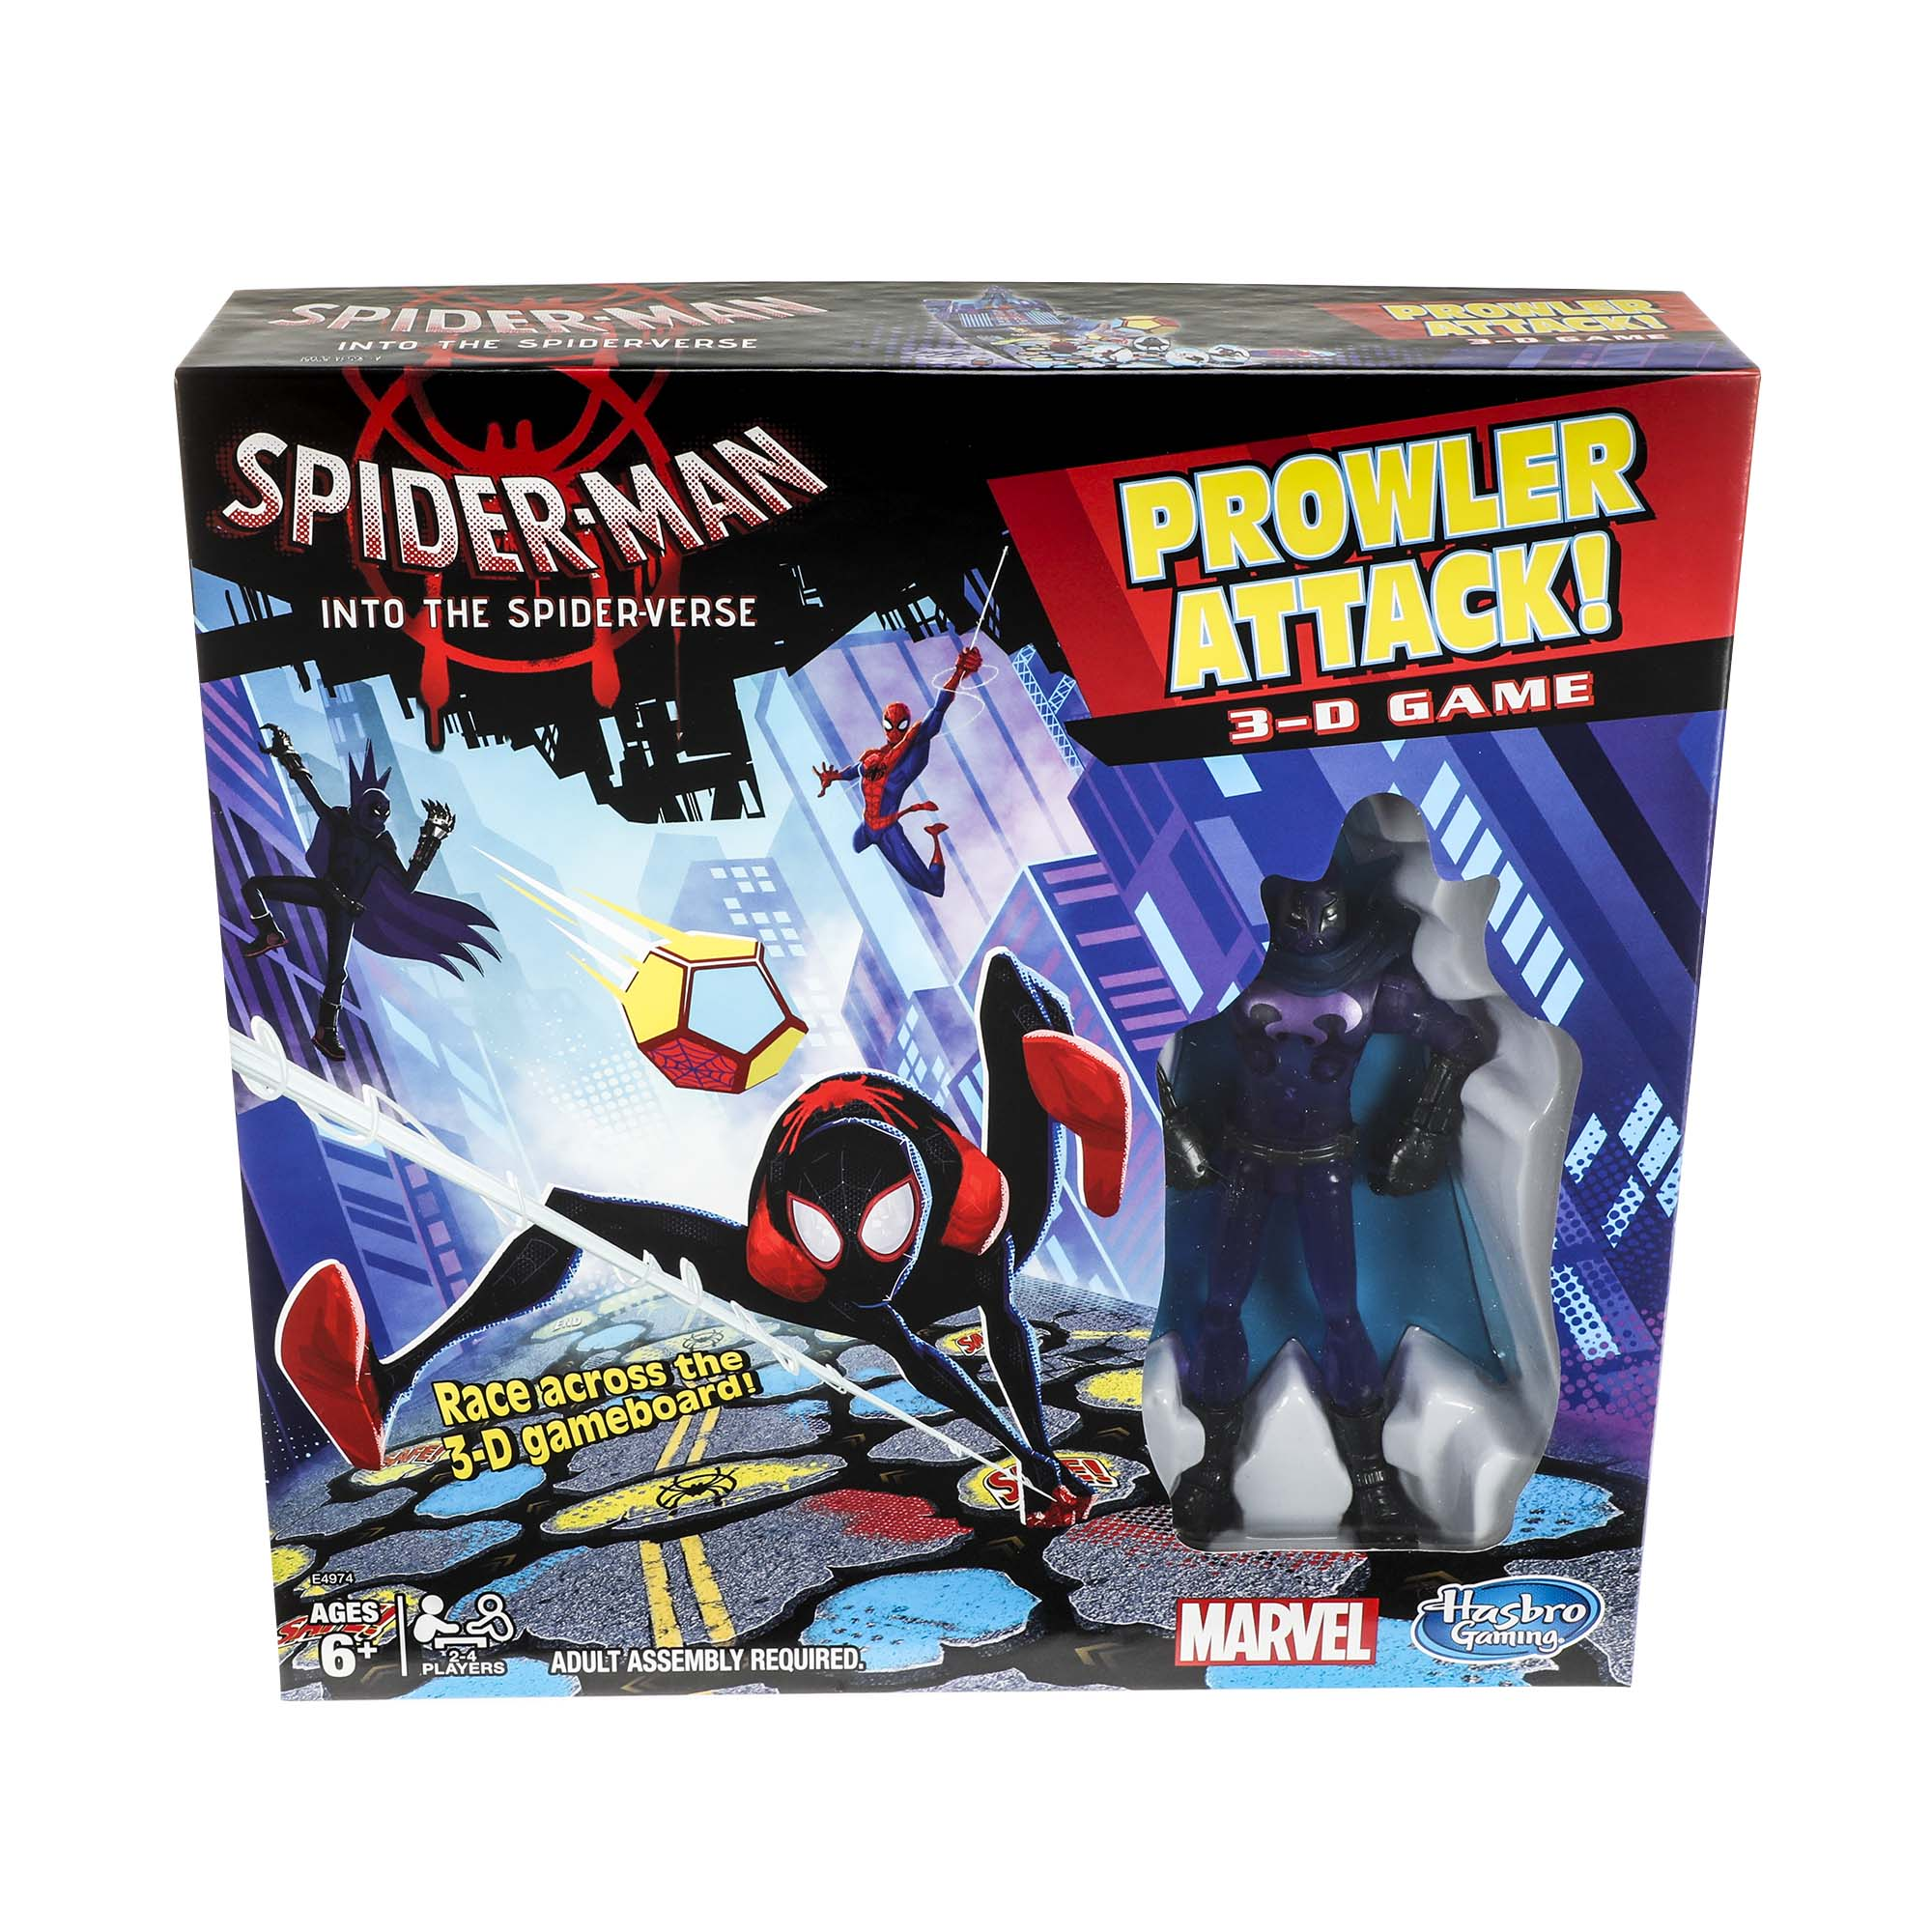 Spider-Man Into the Spider-Verse Prowler Attack 3-D Game - Sold Exclusively at Walmart